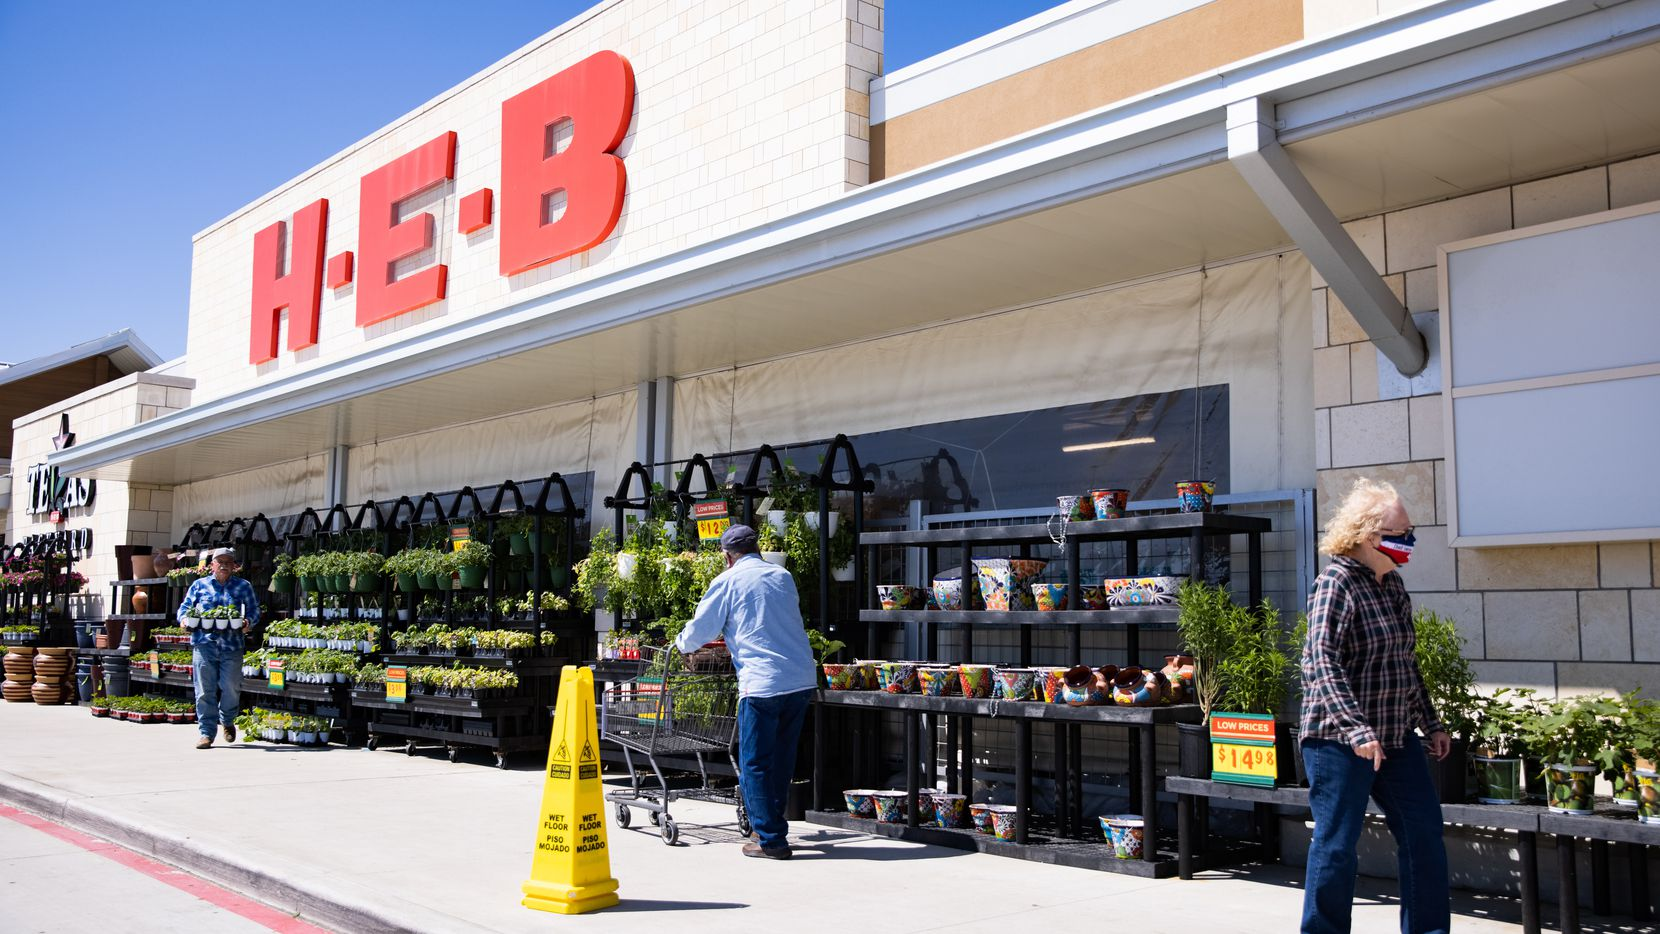 The exterior of the HEB in Hudson Oaks photographed on Friday, March 26, 2021. (Juan Figueroa/ The Dallas Morning News)